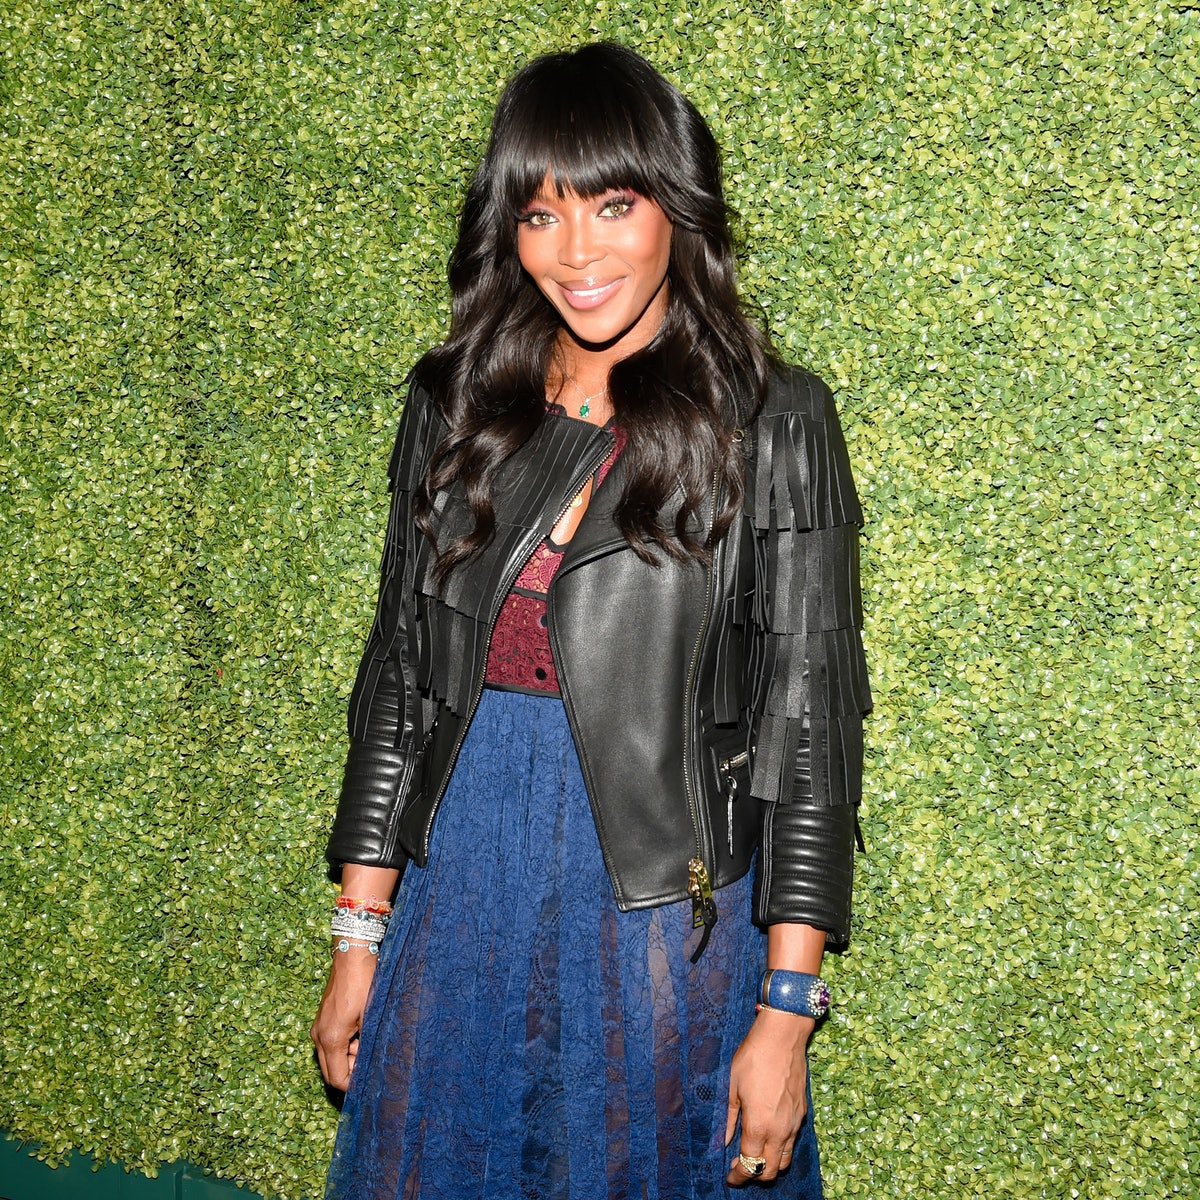 Dinner Honoring British Artist ED ATKINS Hosted by BURBERRY, W MAGAZINE, NEW MUSEUM, and NAOMI CAMPBELL